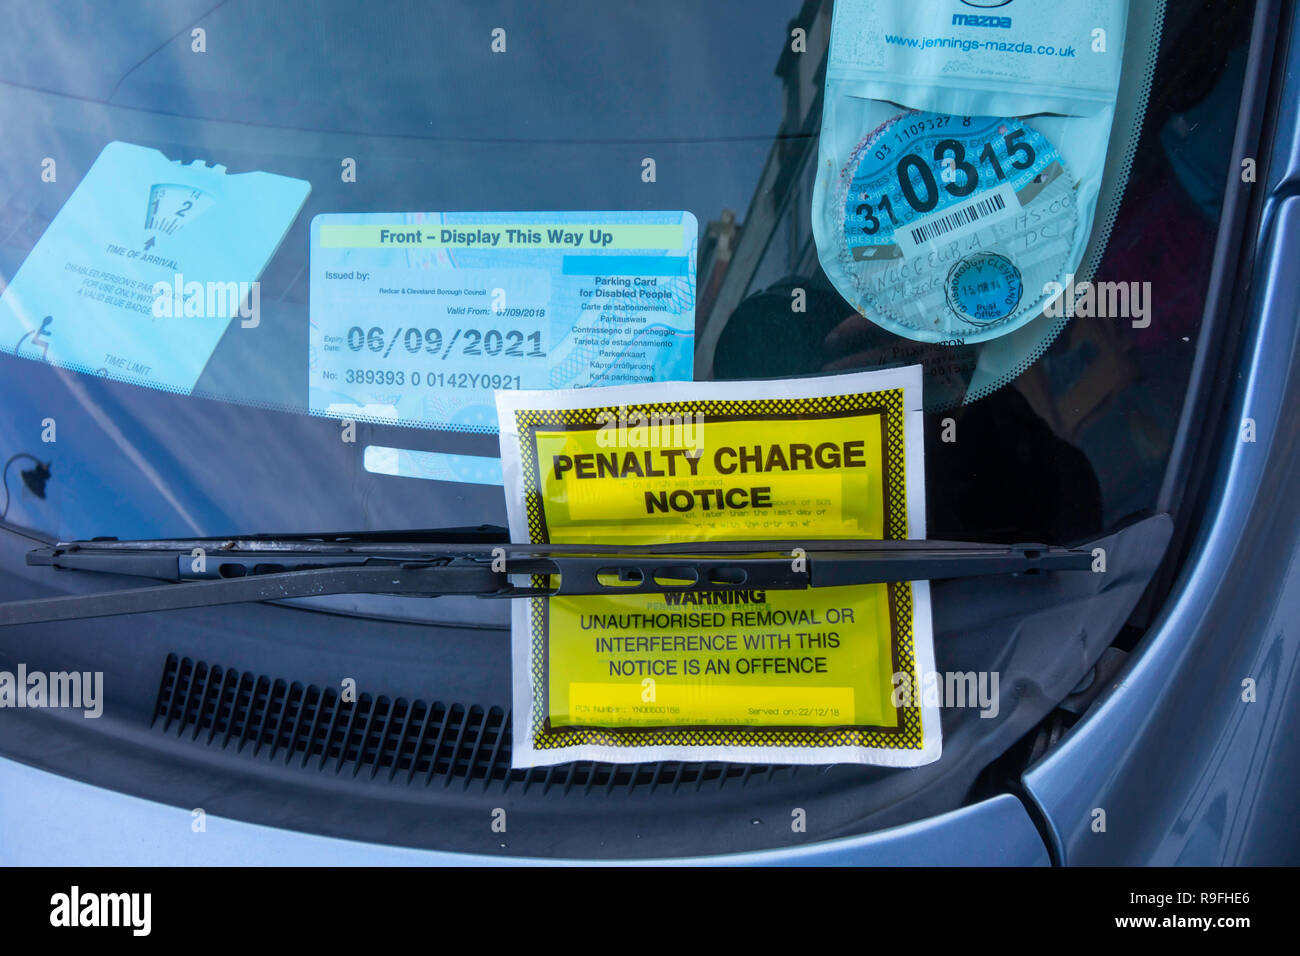 Penalty Charge Notice on a car that has a disabled badge failed to display a valid  paid parking ticket in Whitby North Yorkshire England UK - Stock Image